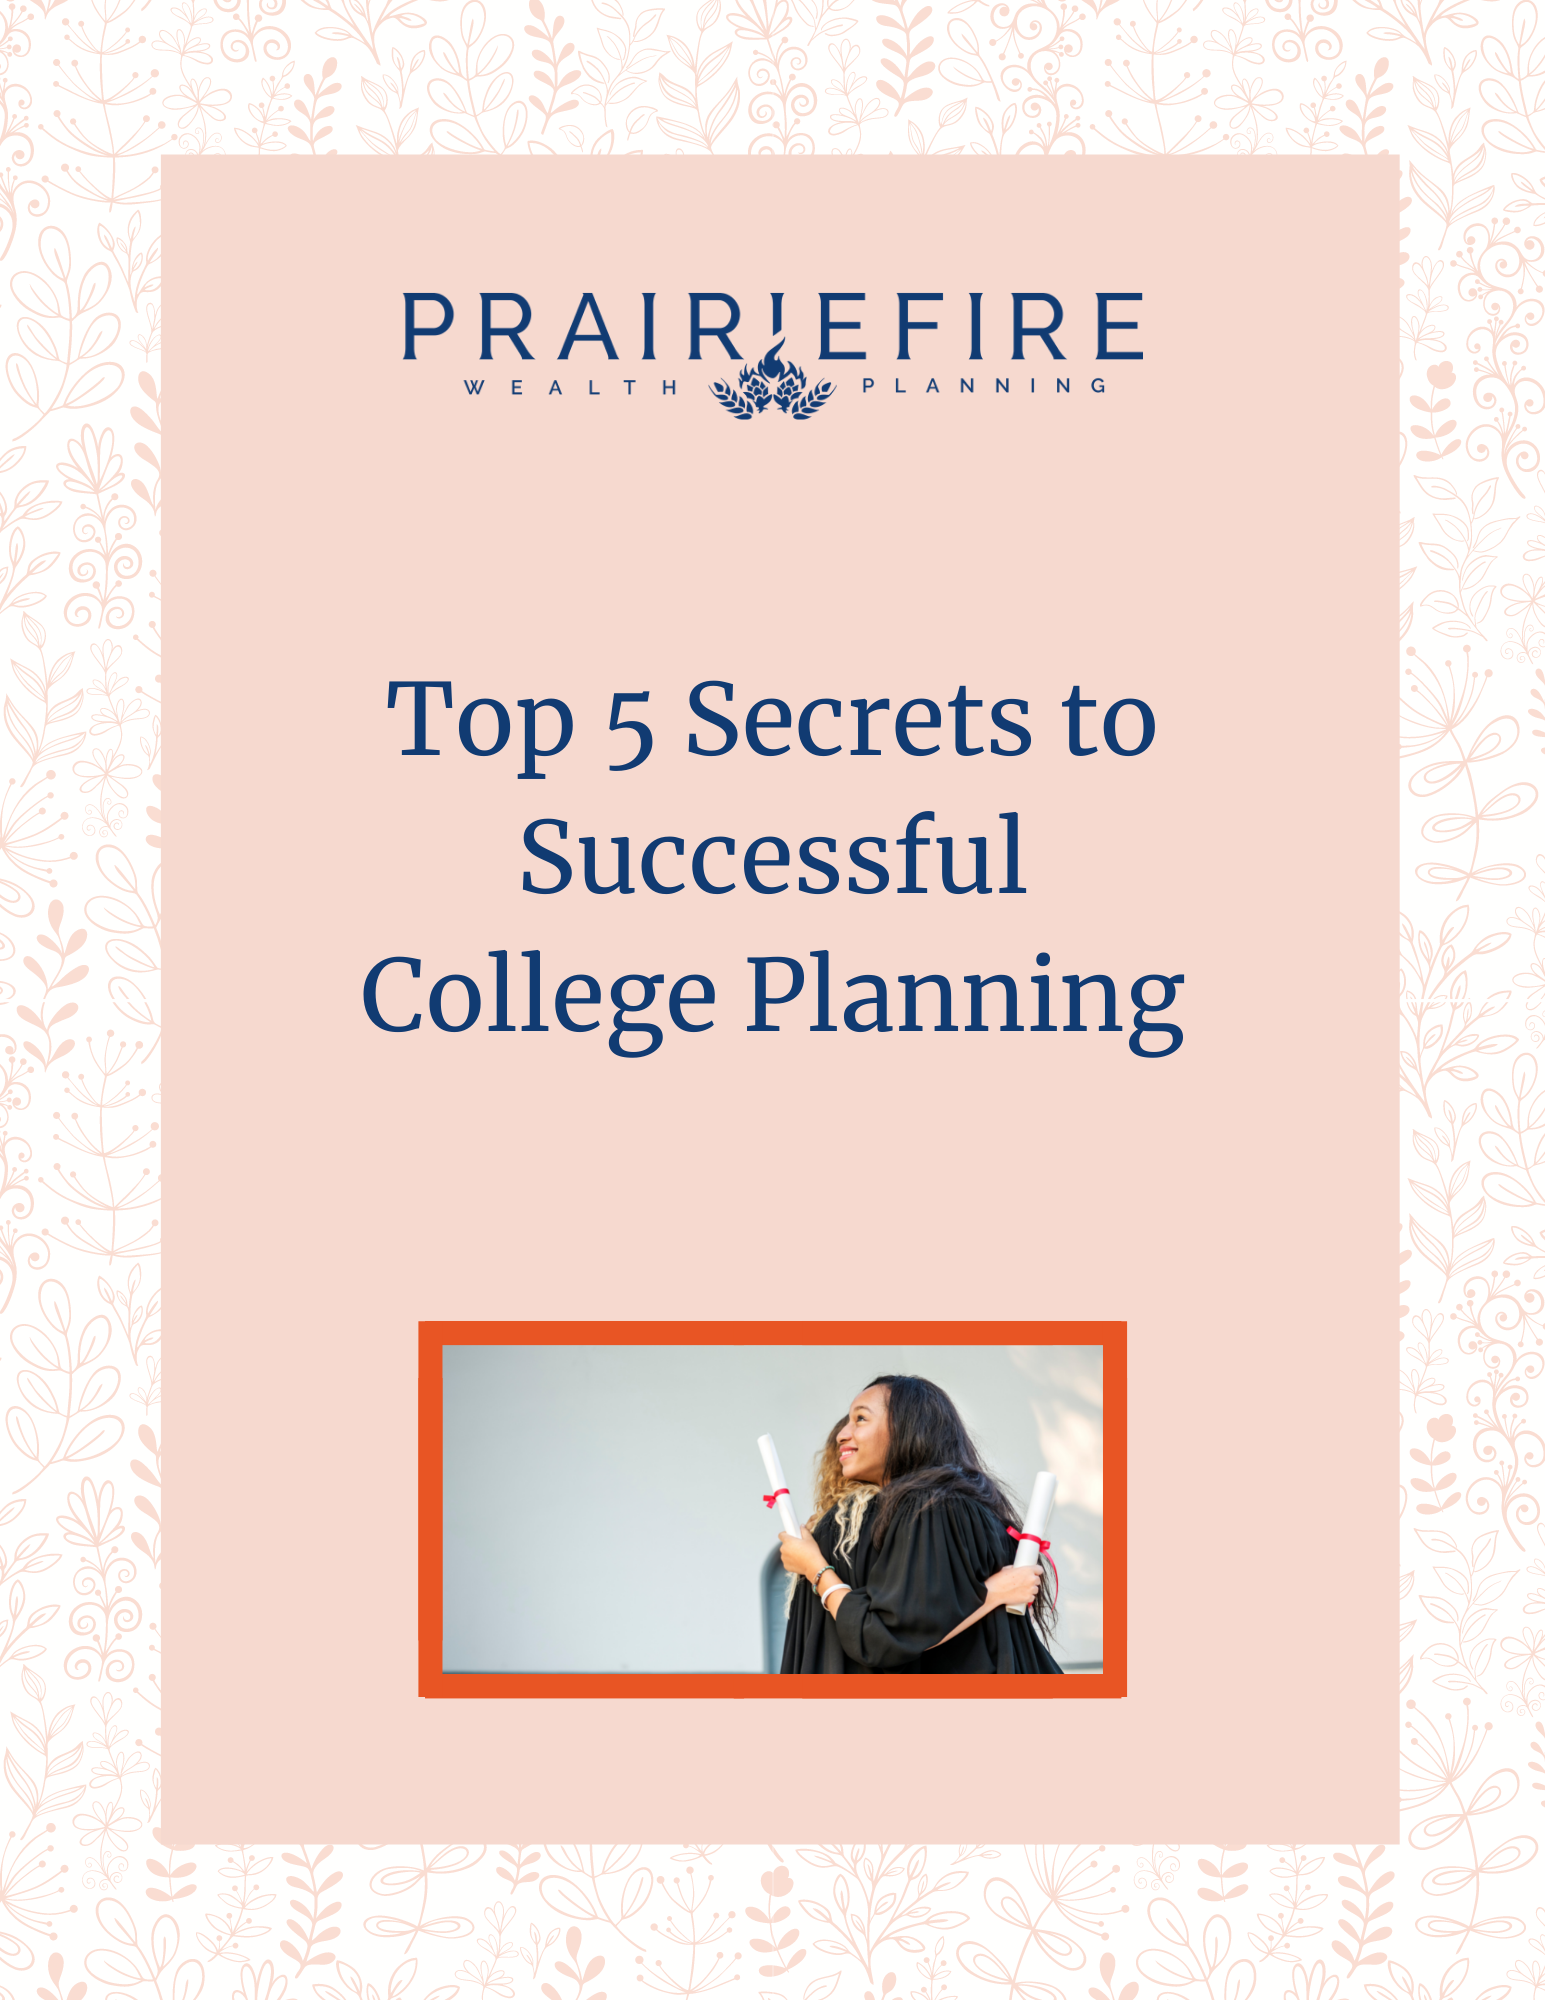 Top 5 secrets to successful college planning